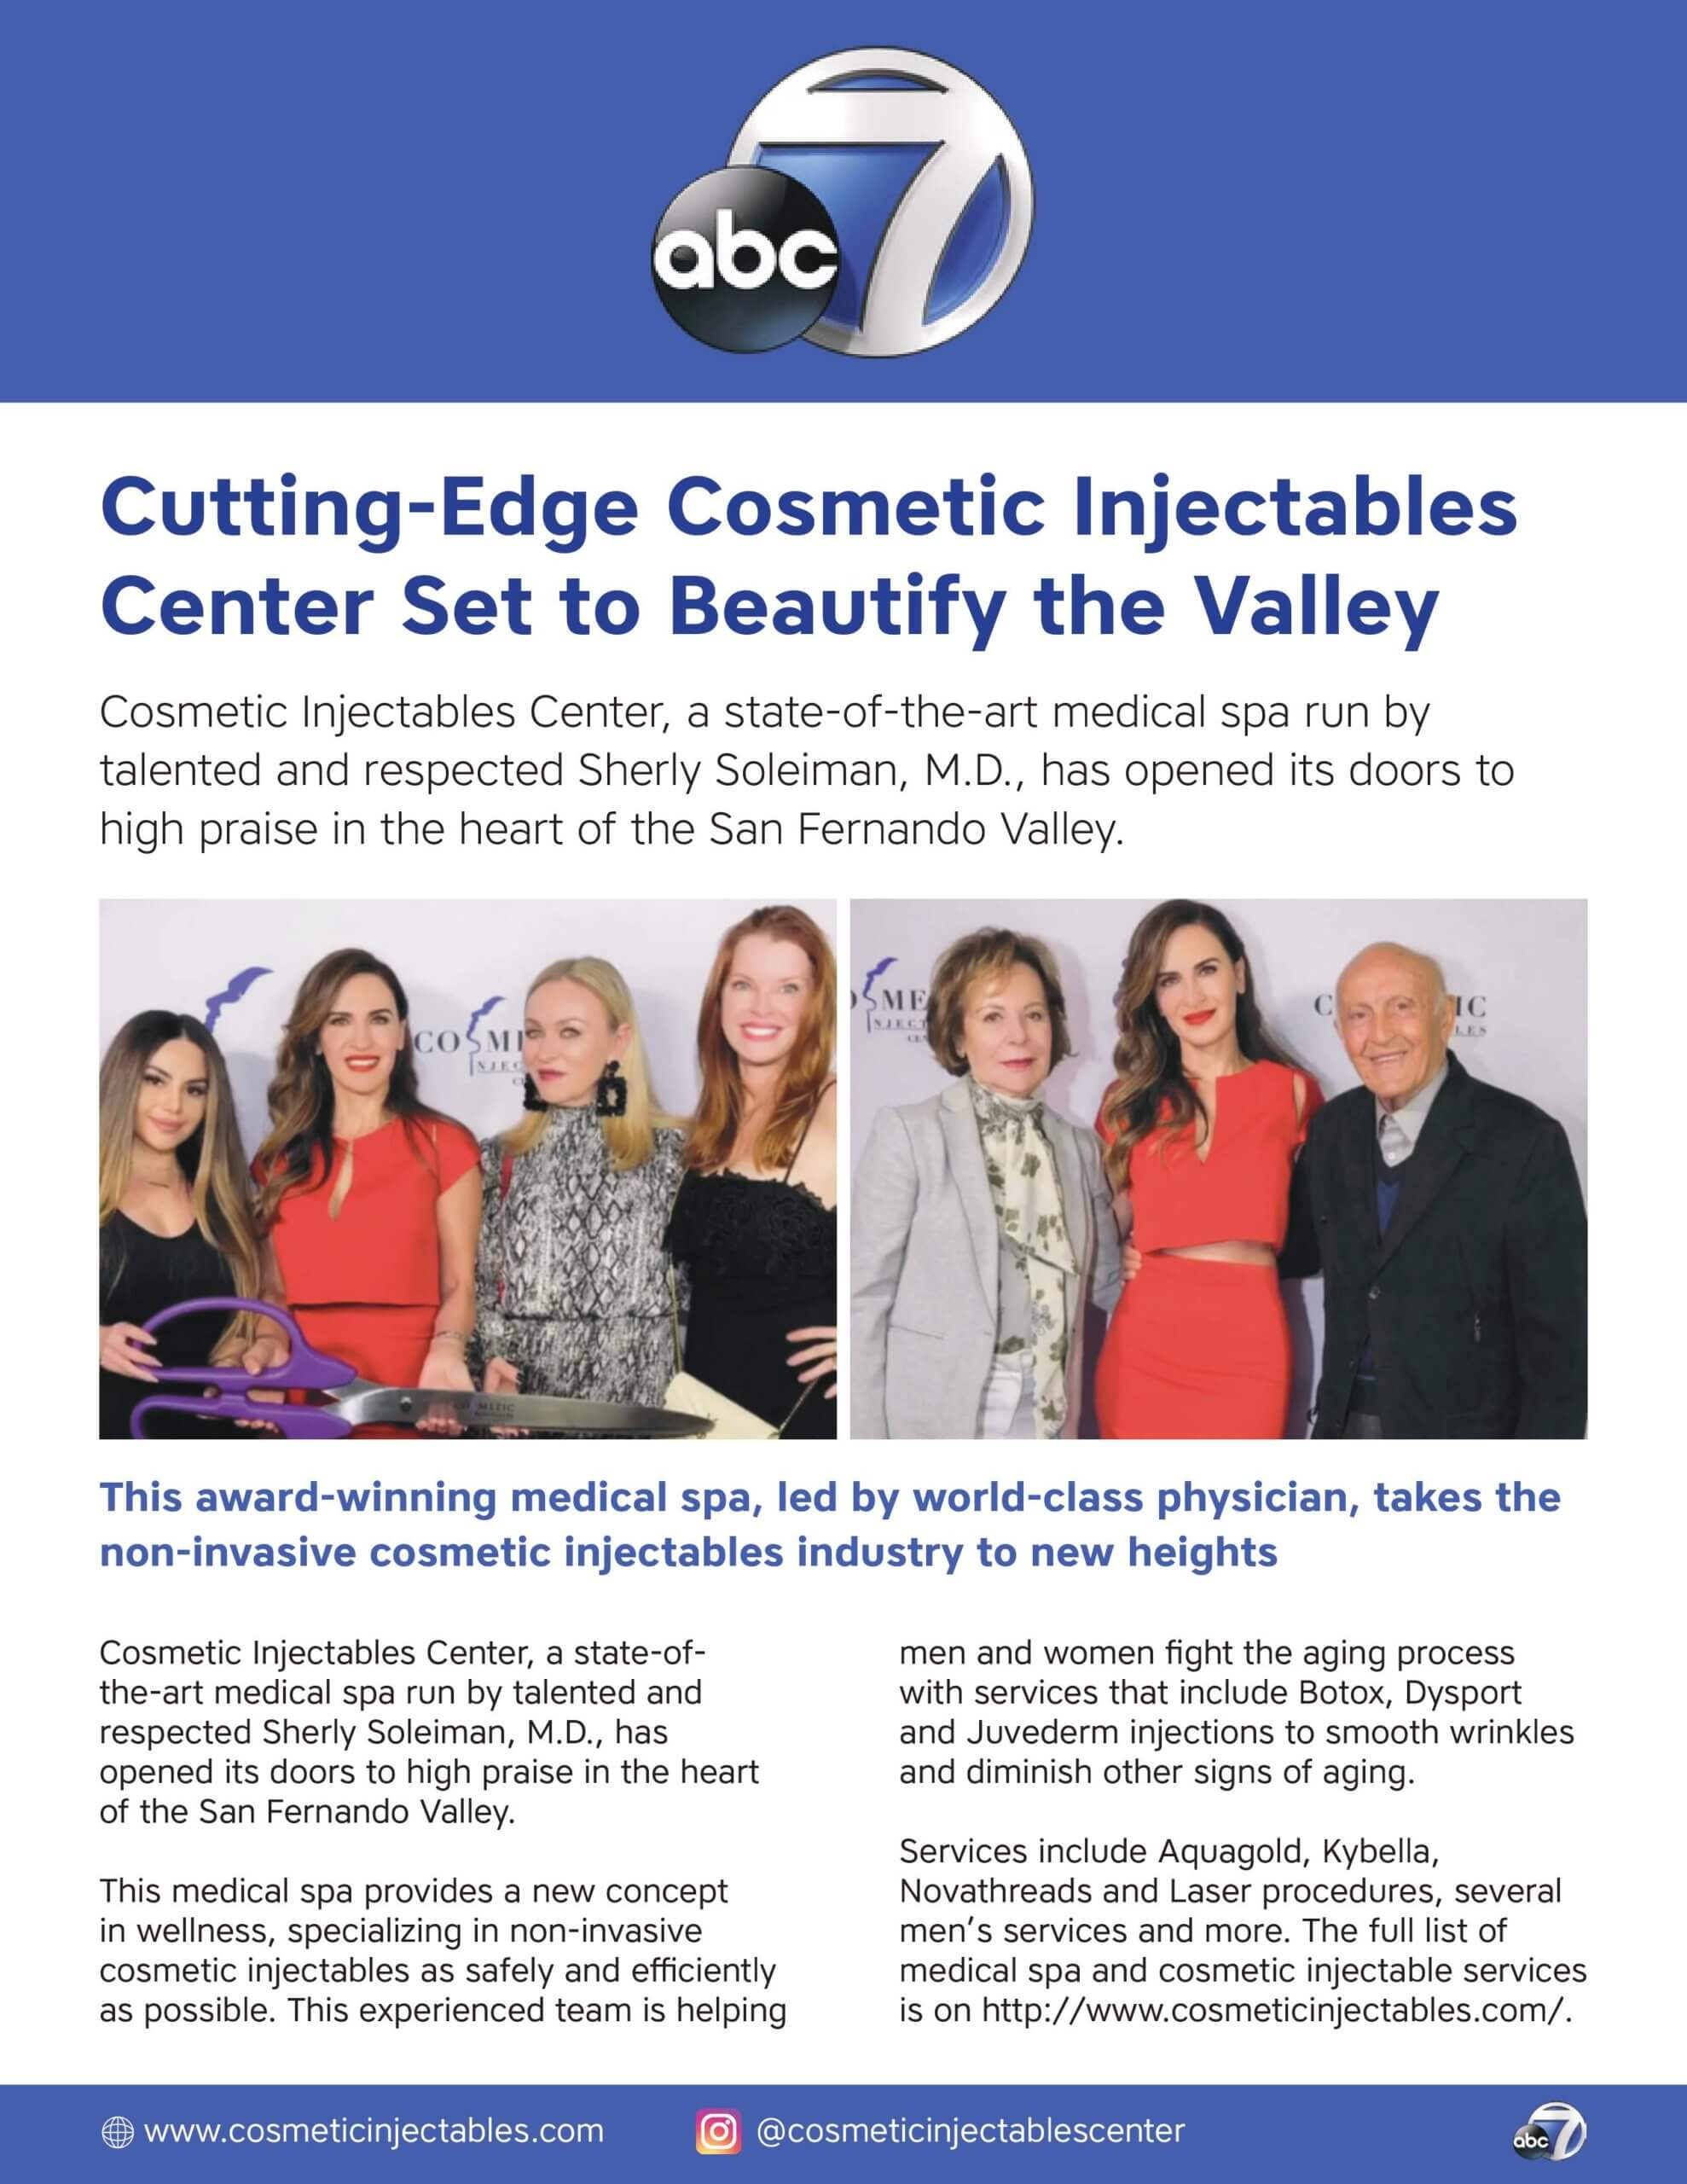 Cosmetic Injectables medical spa Grand Opening